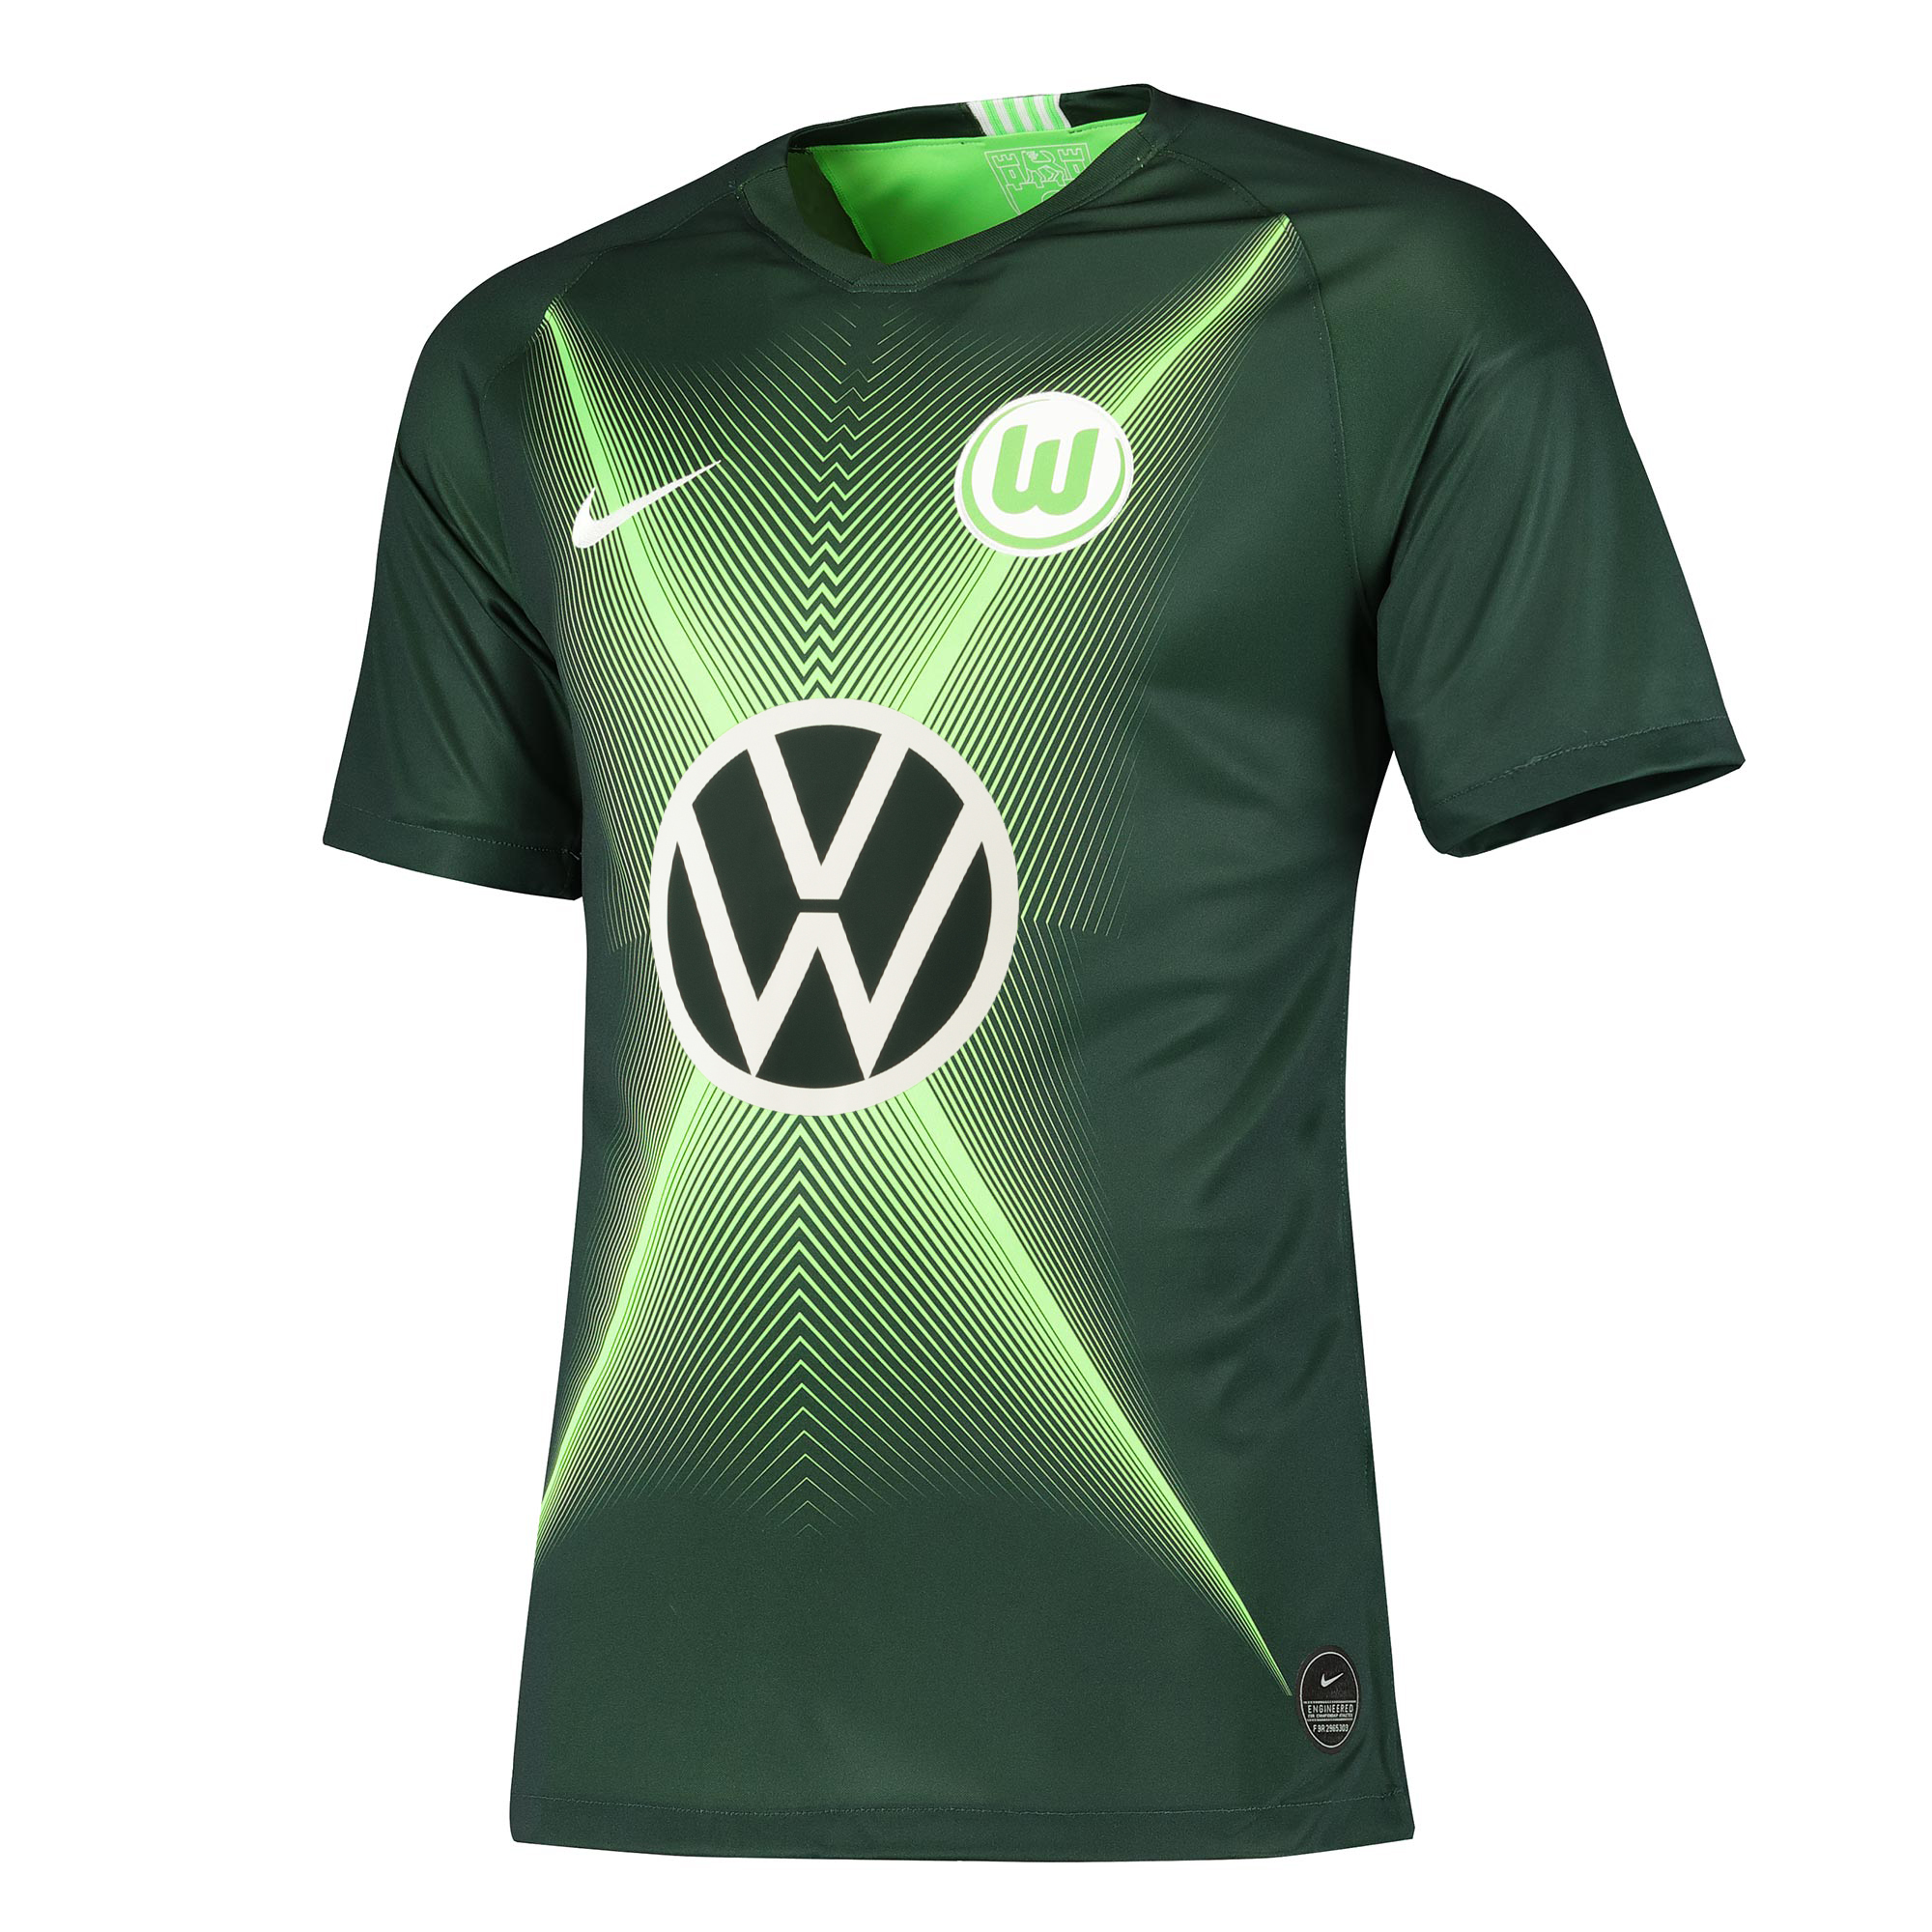 VfL Wolfsburg Home shirt